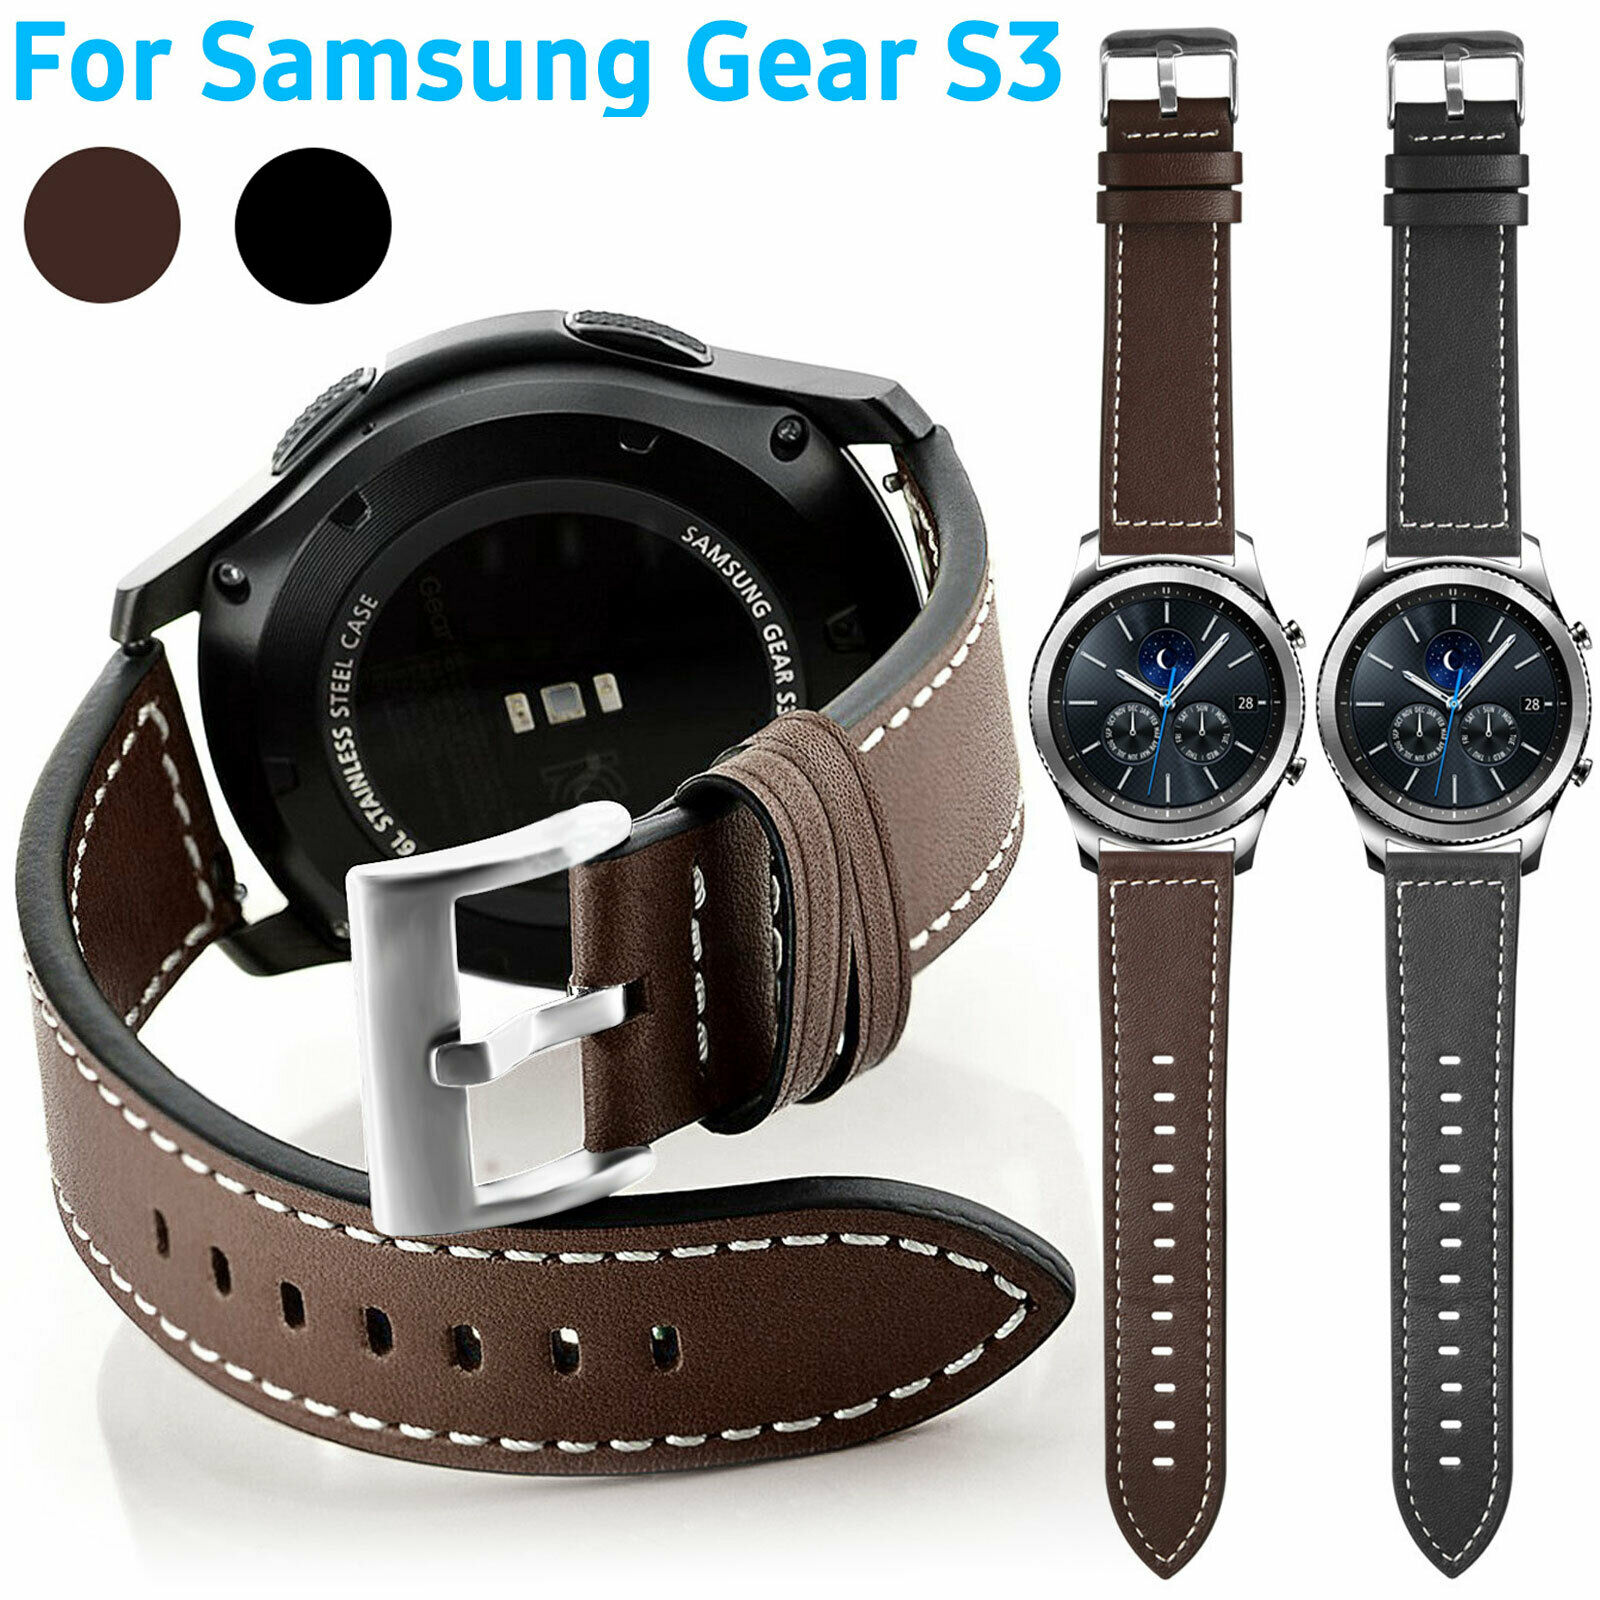 Wristband Leather Strap Band Magnetic for Samsung Gear S3 Classic S3 Frontier 1 of 7FREE Shipping ...